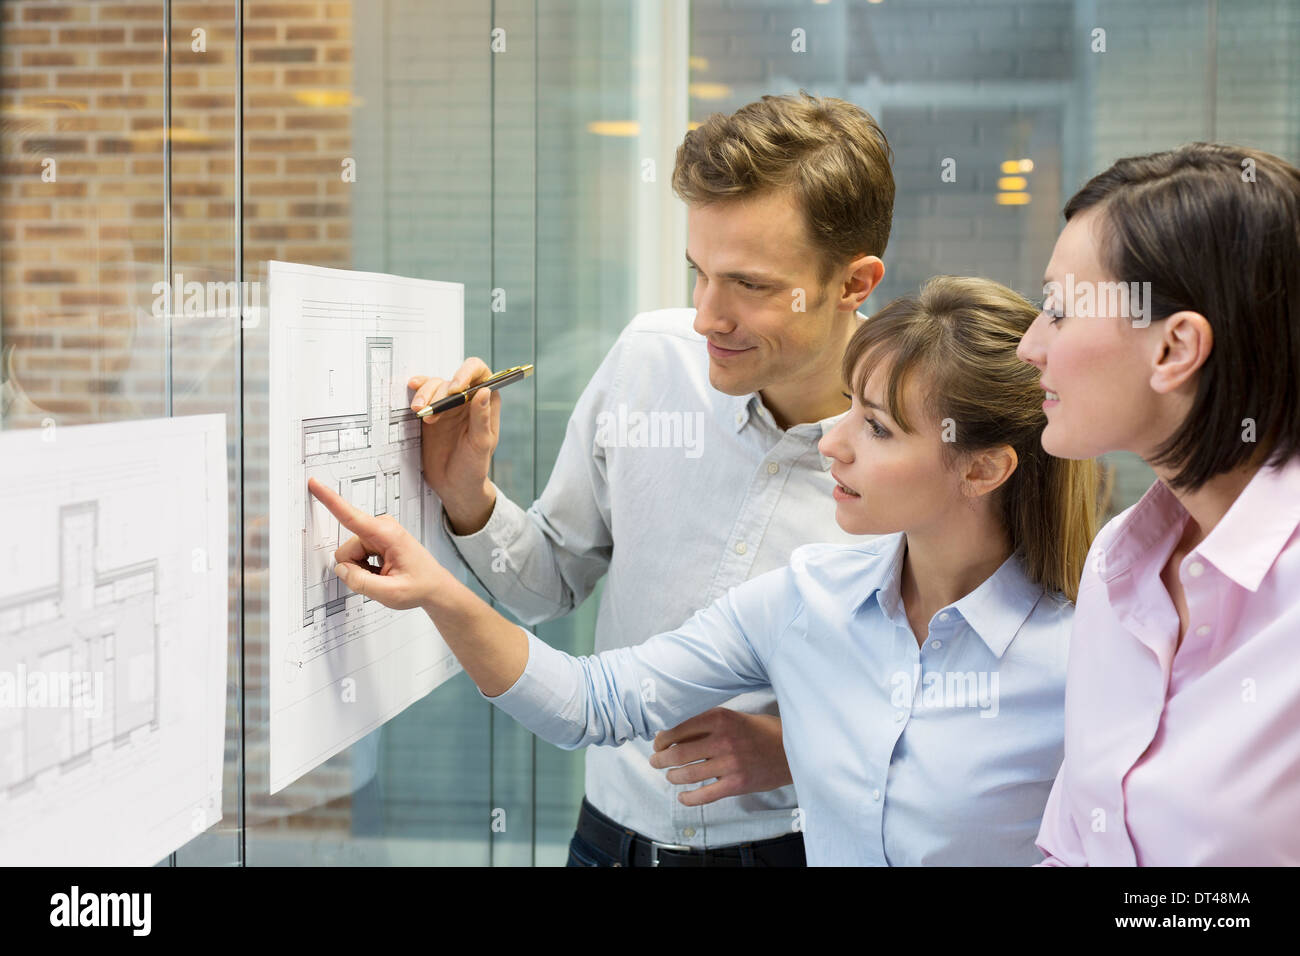 Business man woman plans meeting colleagues - Stock Image